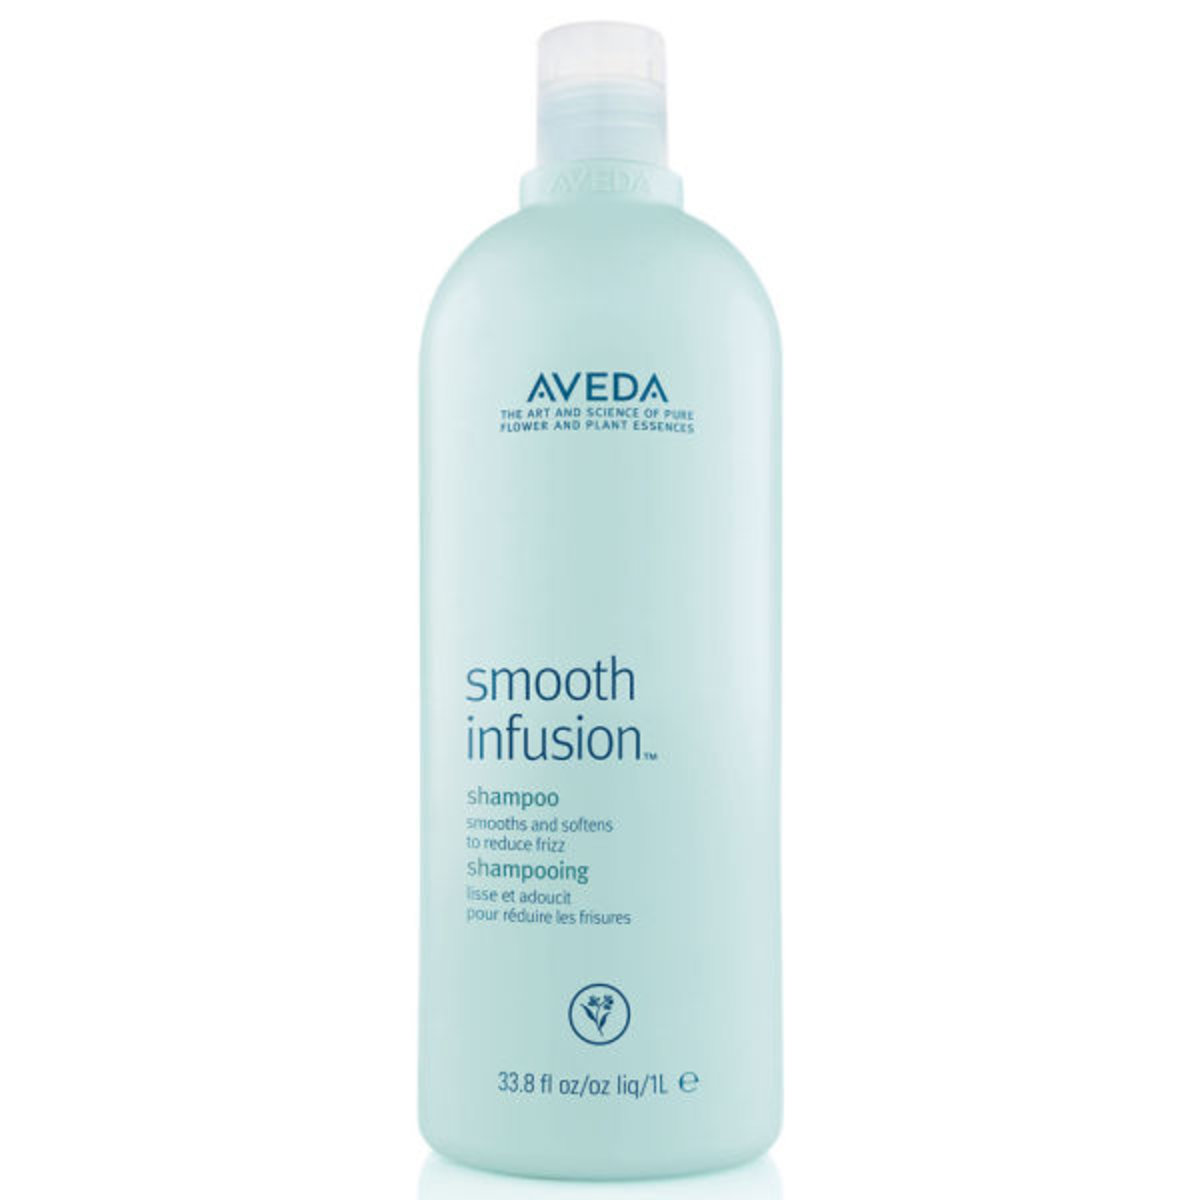 Smooth infusion™柔滑洗髮水 1000ml (18084846810)